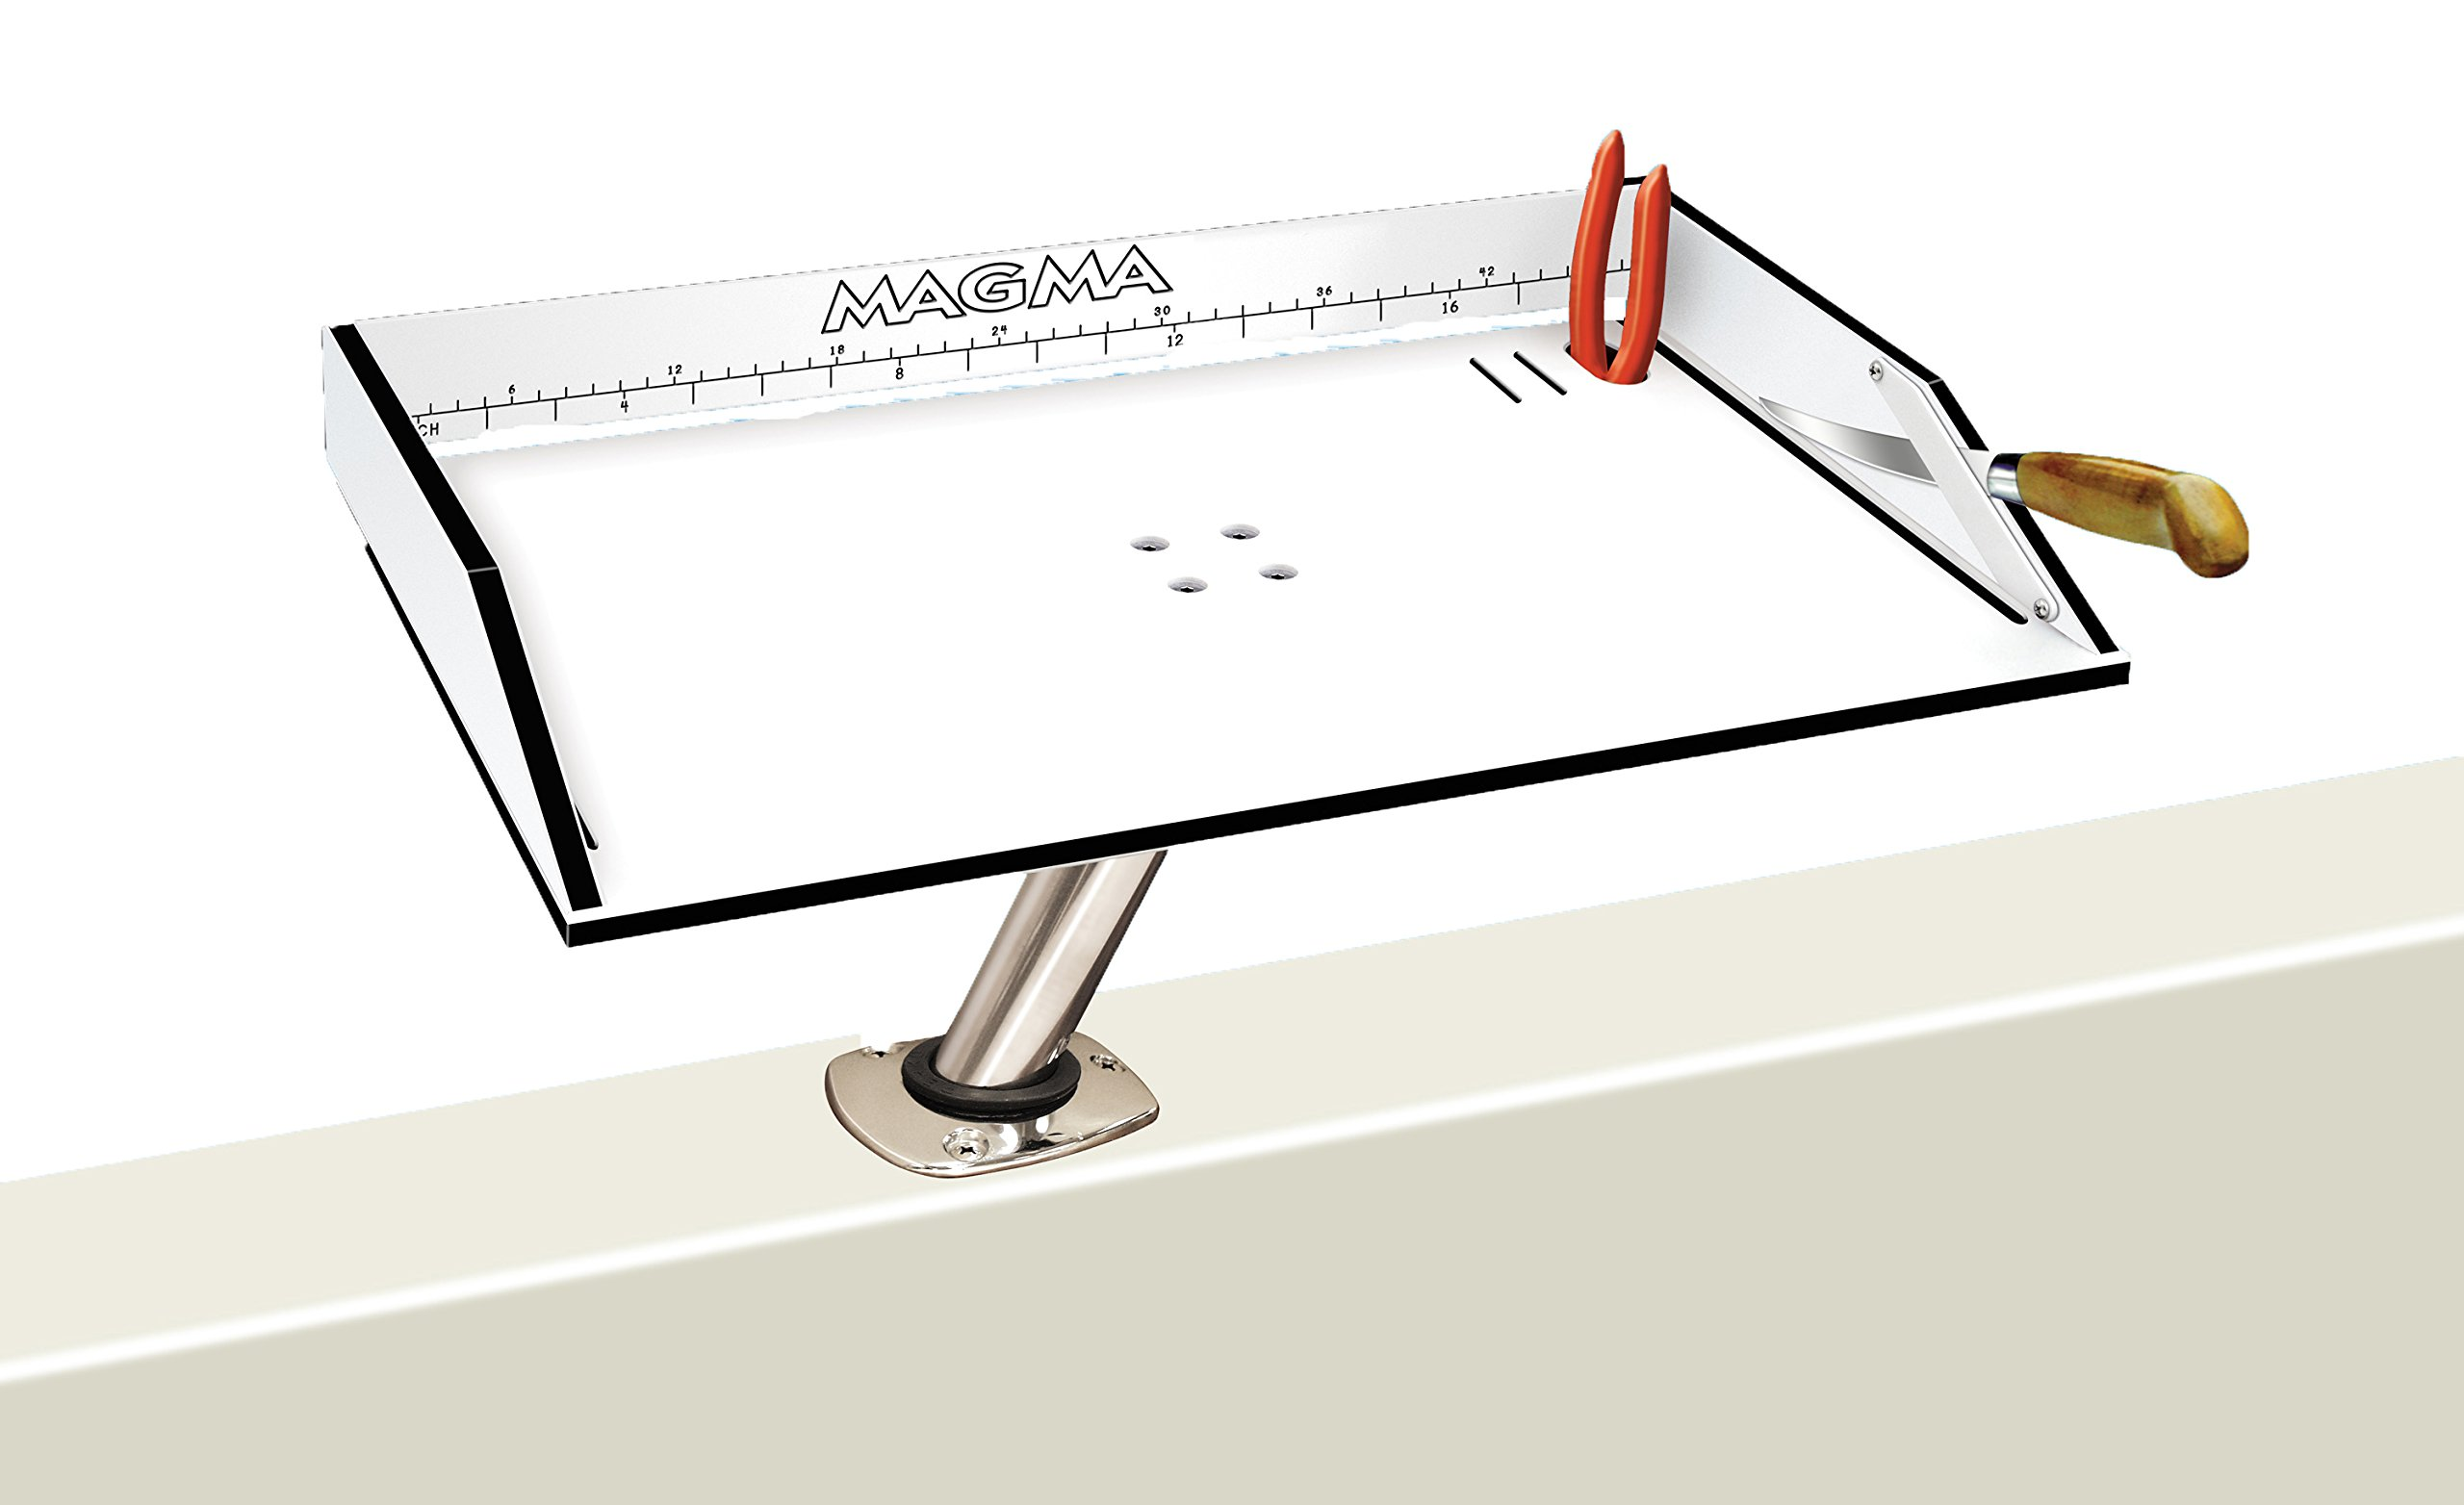 Magma Products, T10-302B Bait / Filet Mate Table, 20 Inch x 12-3 / 4 inch by Magma Products, Inc.